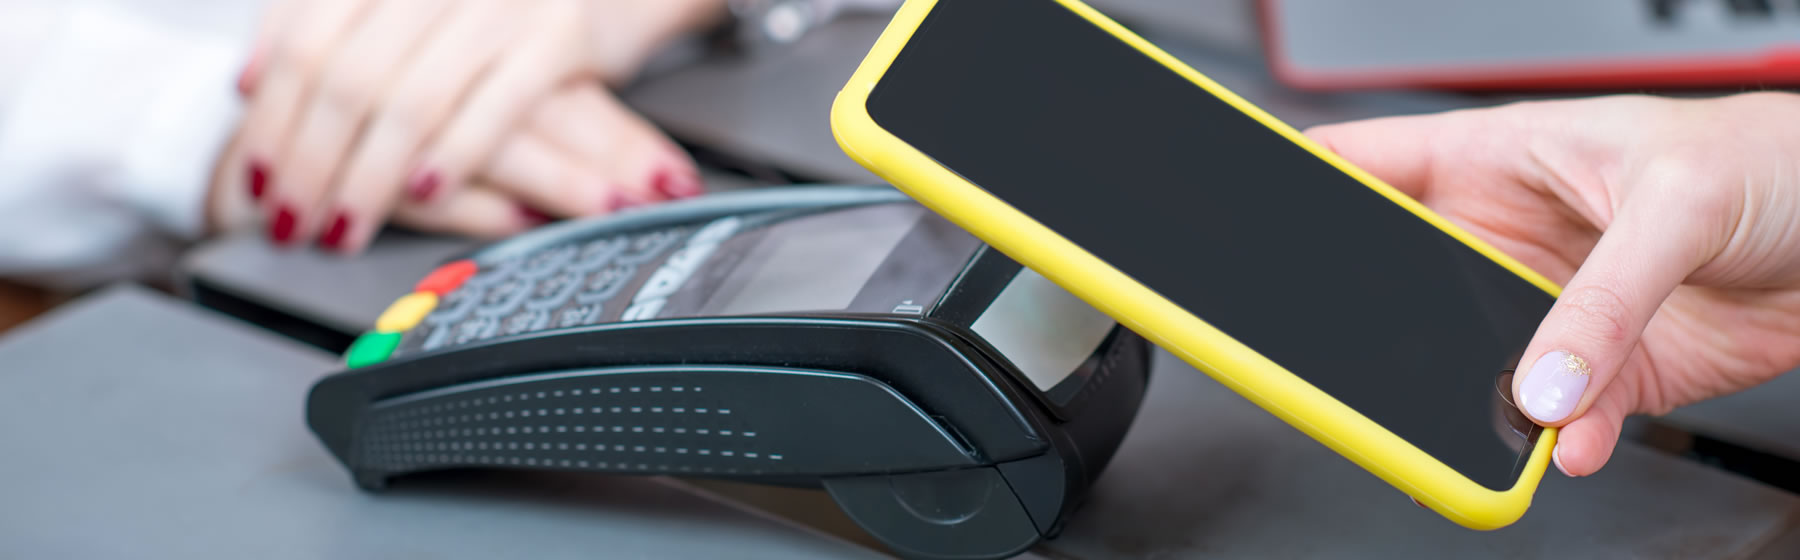 Contactless and Mobile Payments